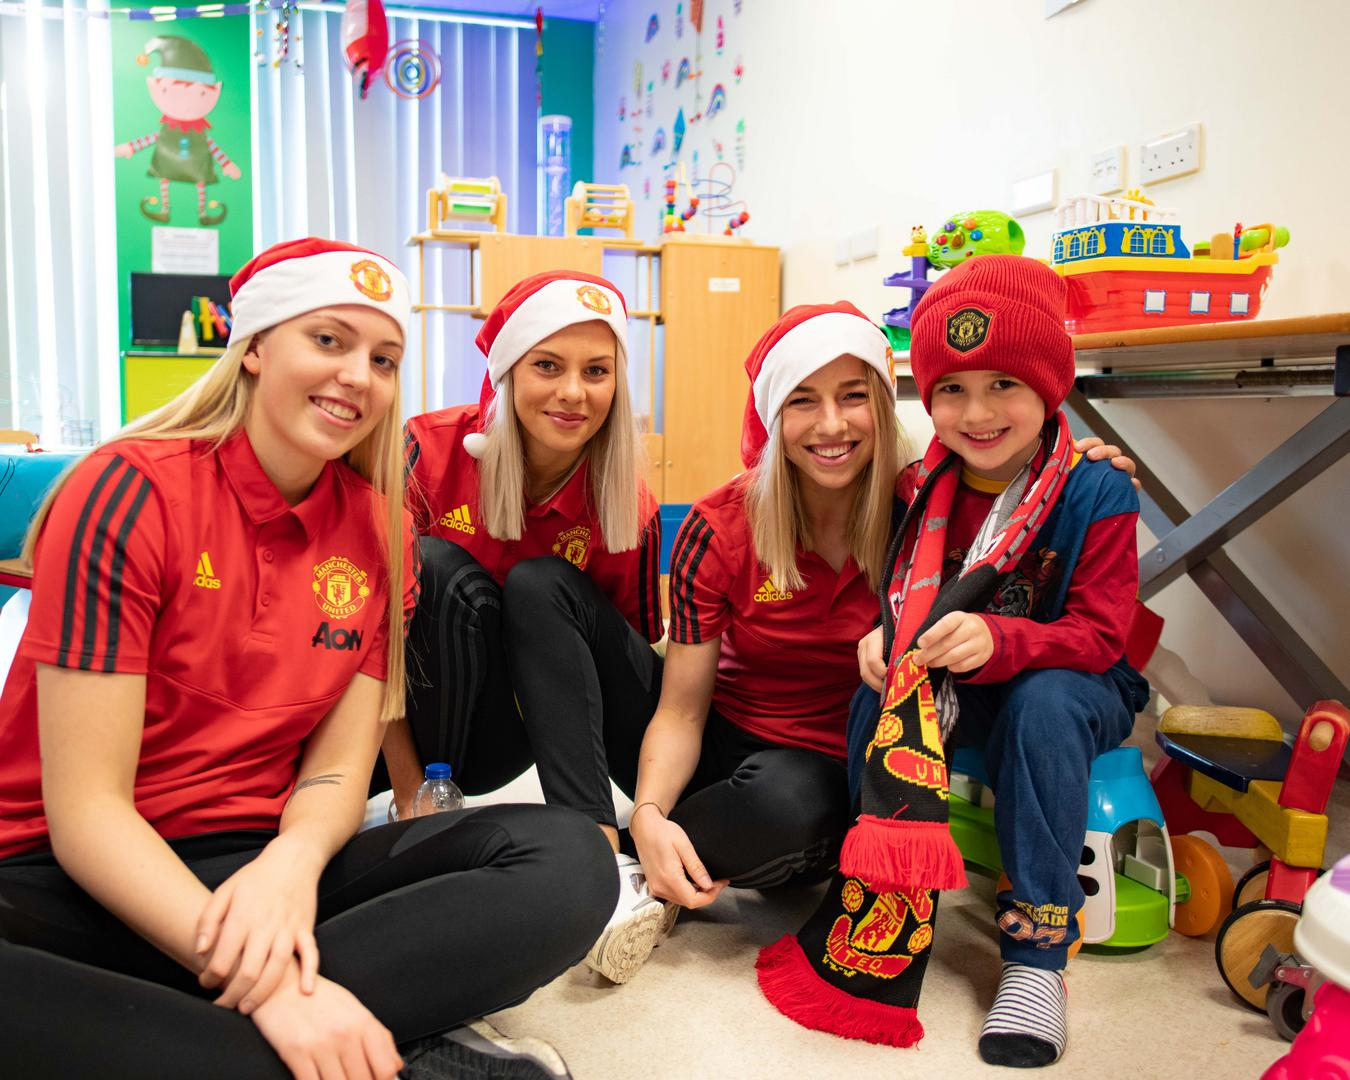 Emily Ramsey, Lotta Okvist and Jackie Groenen at Manchester Children's Hospital.